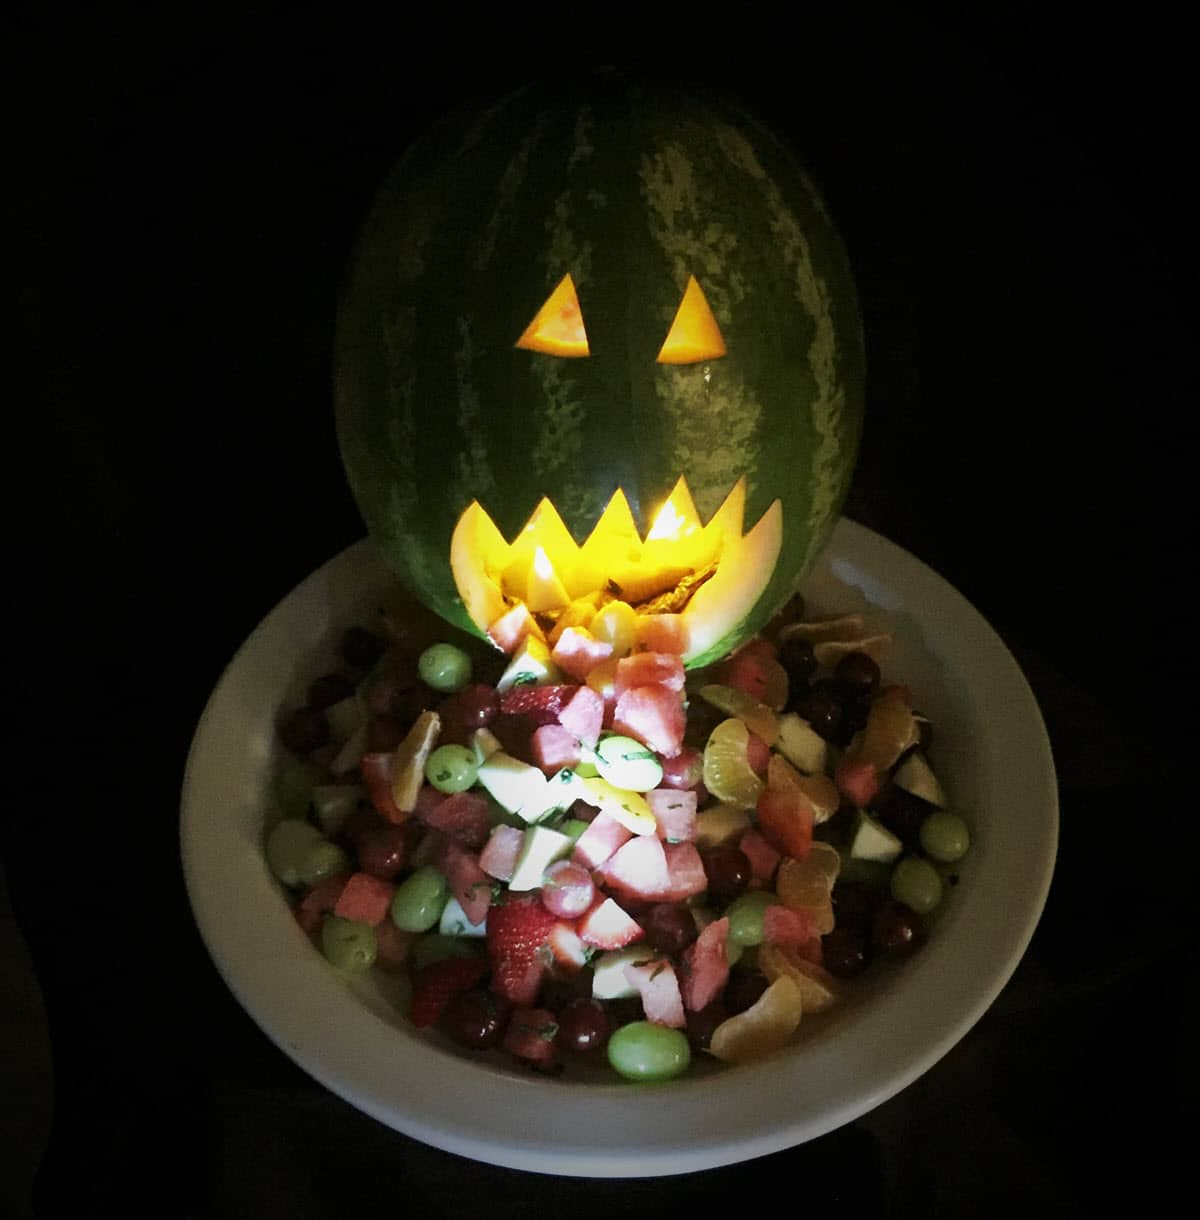 Watermelon jack-o-lantern in the dark, light from inside it is shining on fruit spilling out its mouth and down a platter.